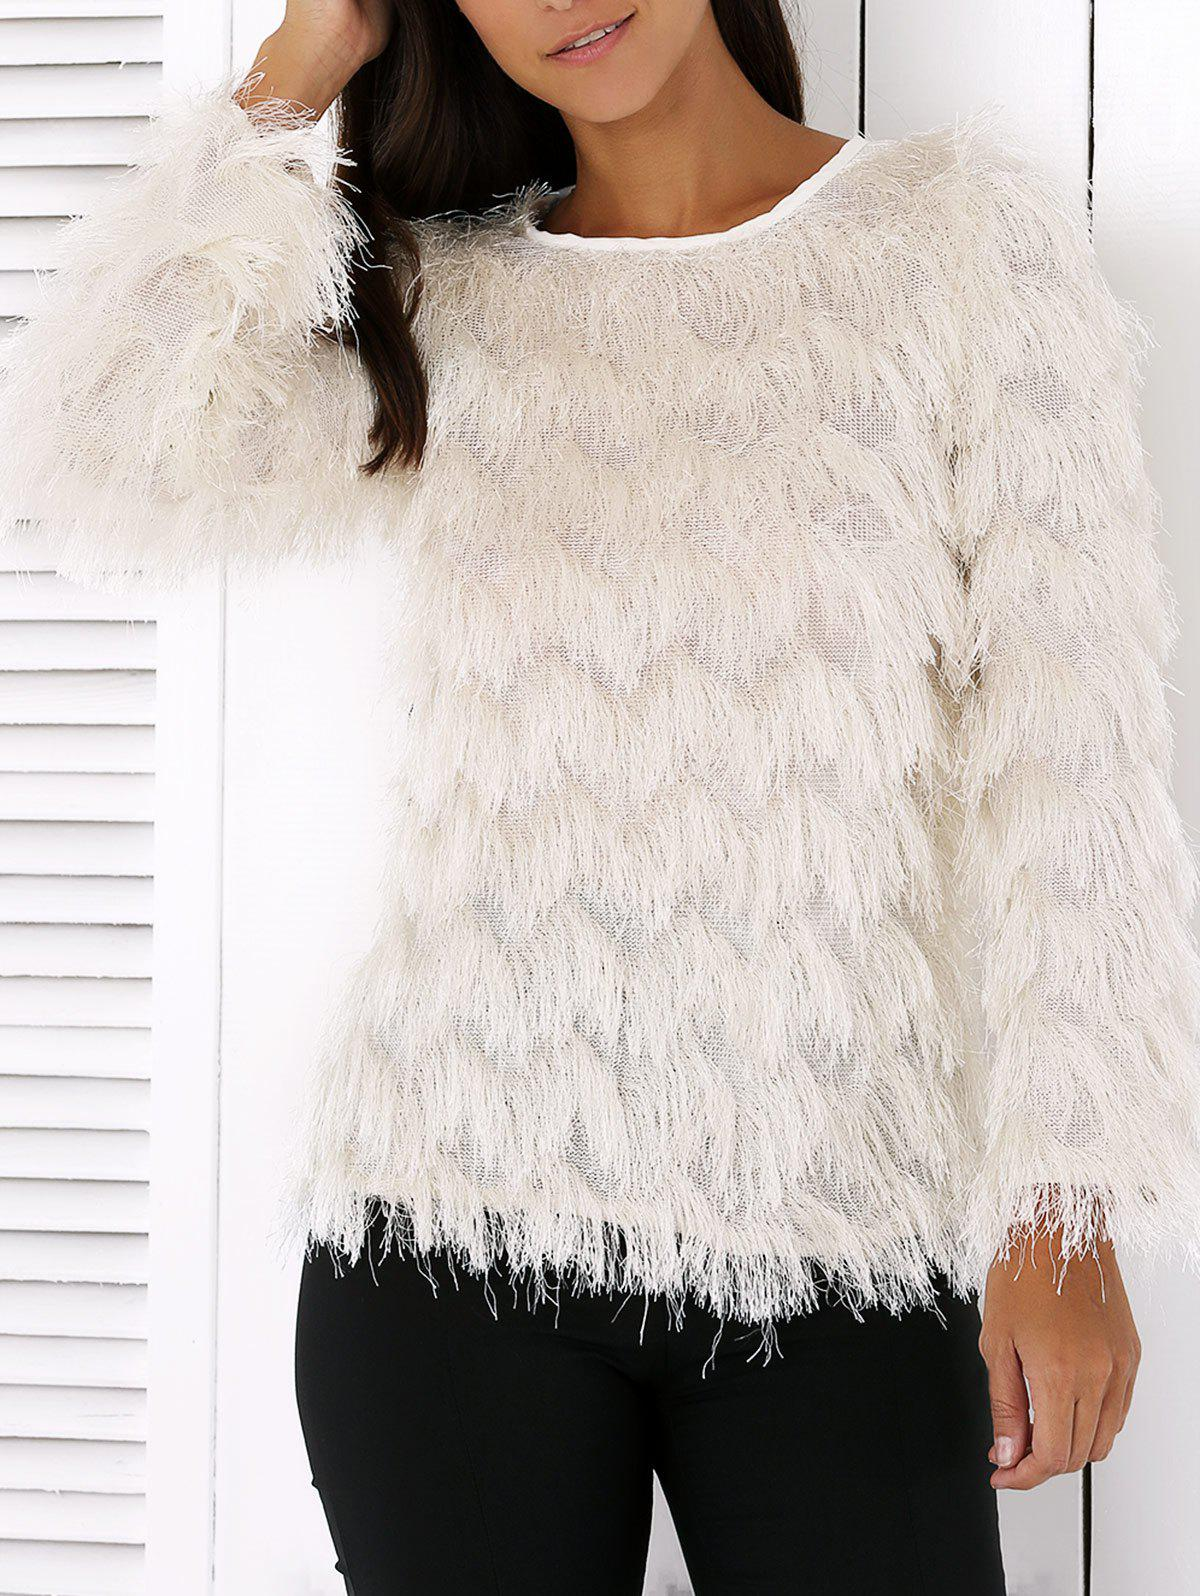 Wavy Fringed Design Pullover Sweater - WHITE 2XL